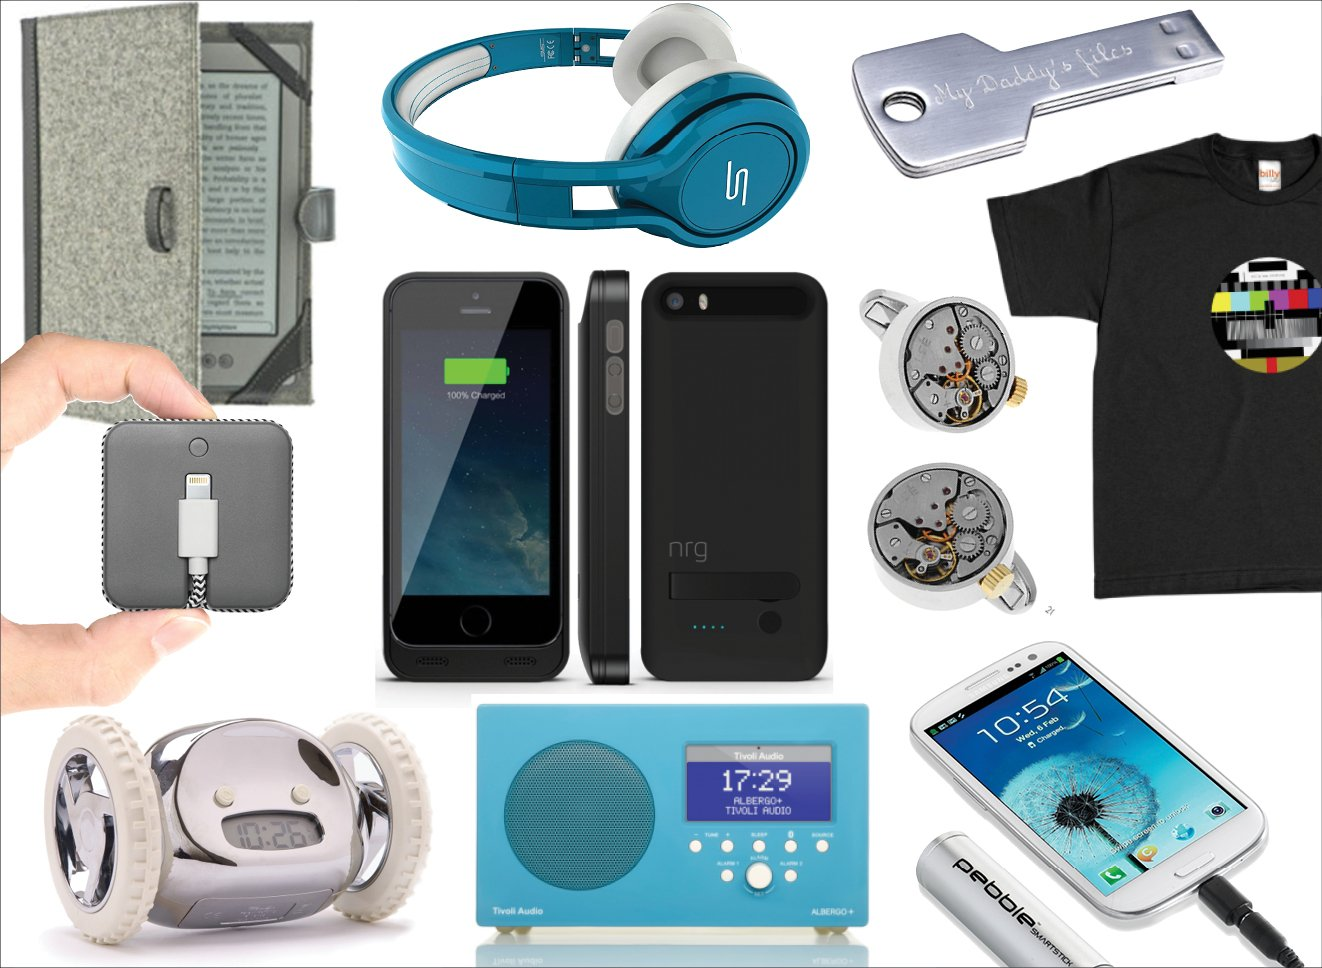 Gadget geek techy gift ideas for father 39 s day hardtofind for Cool gadgets for dads